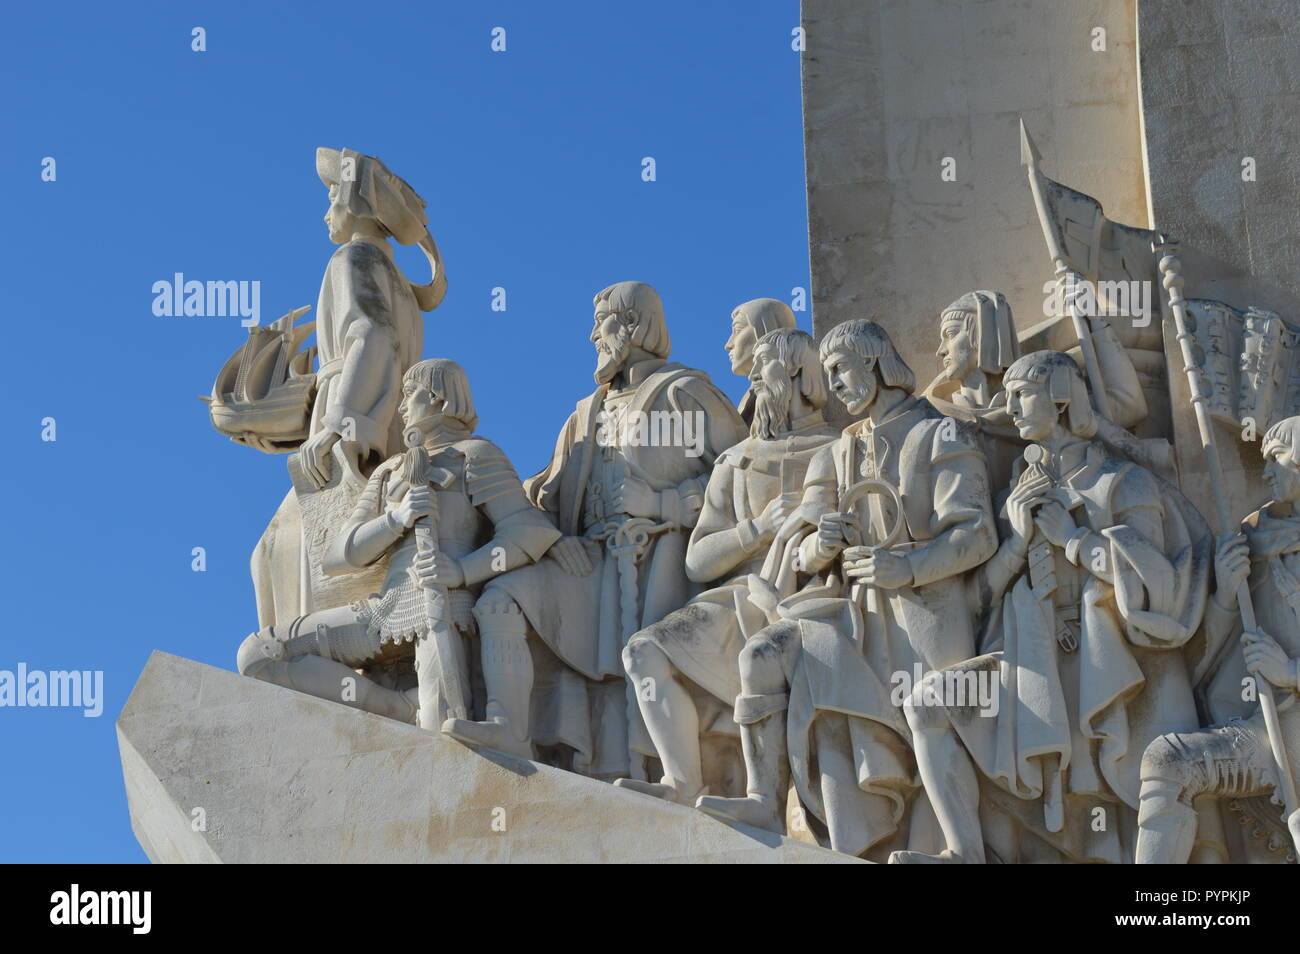 The Monument of the Discoveries at the Tagus River in Lisbon, Portugal, was built in honor of Henry the Navigator, celebrating the Age of Exploration. Stock Photo